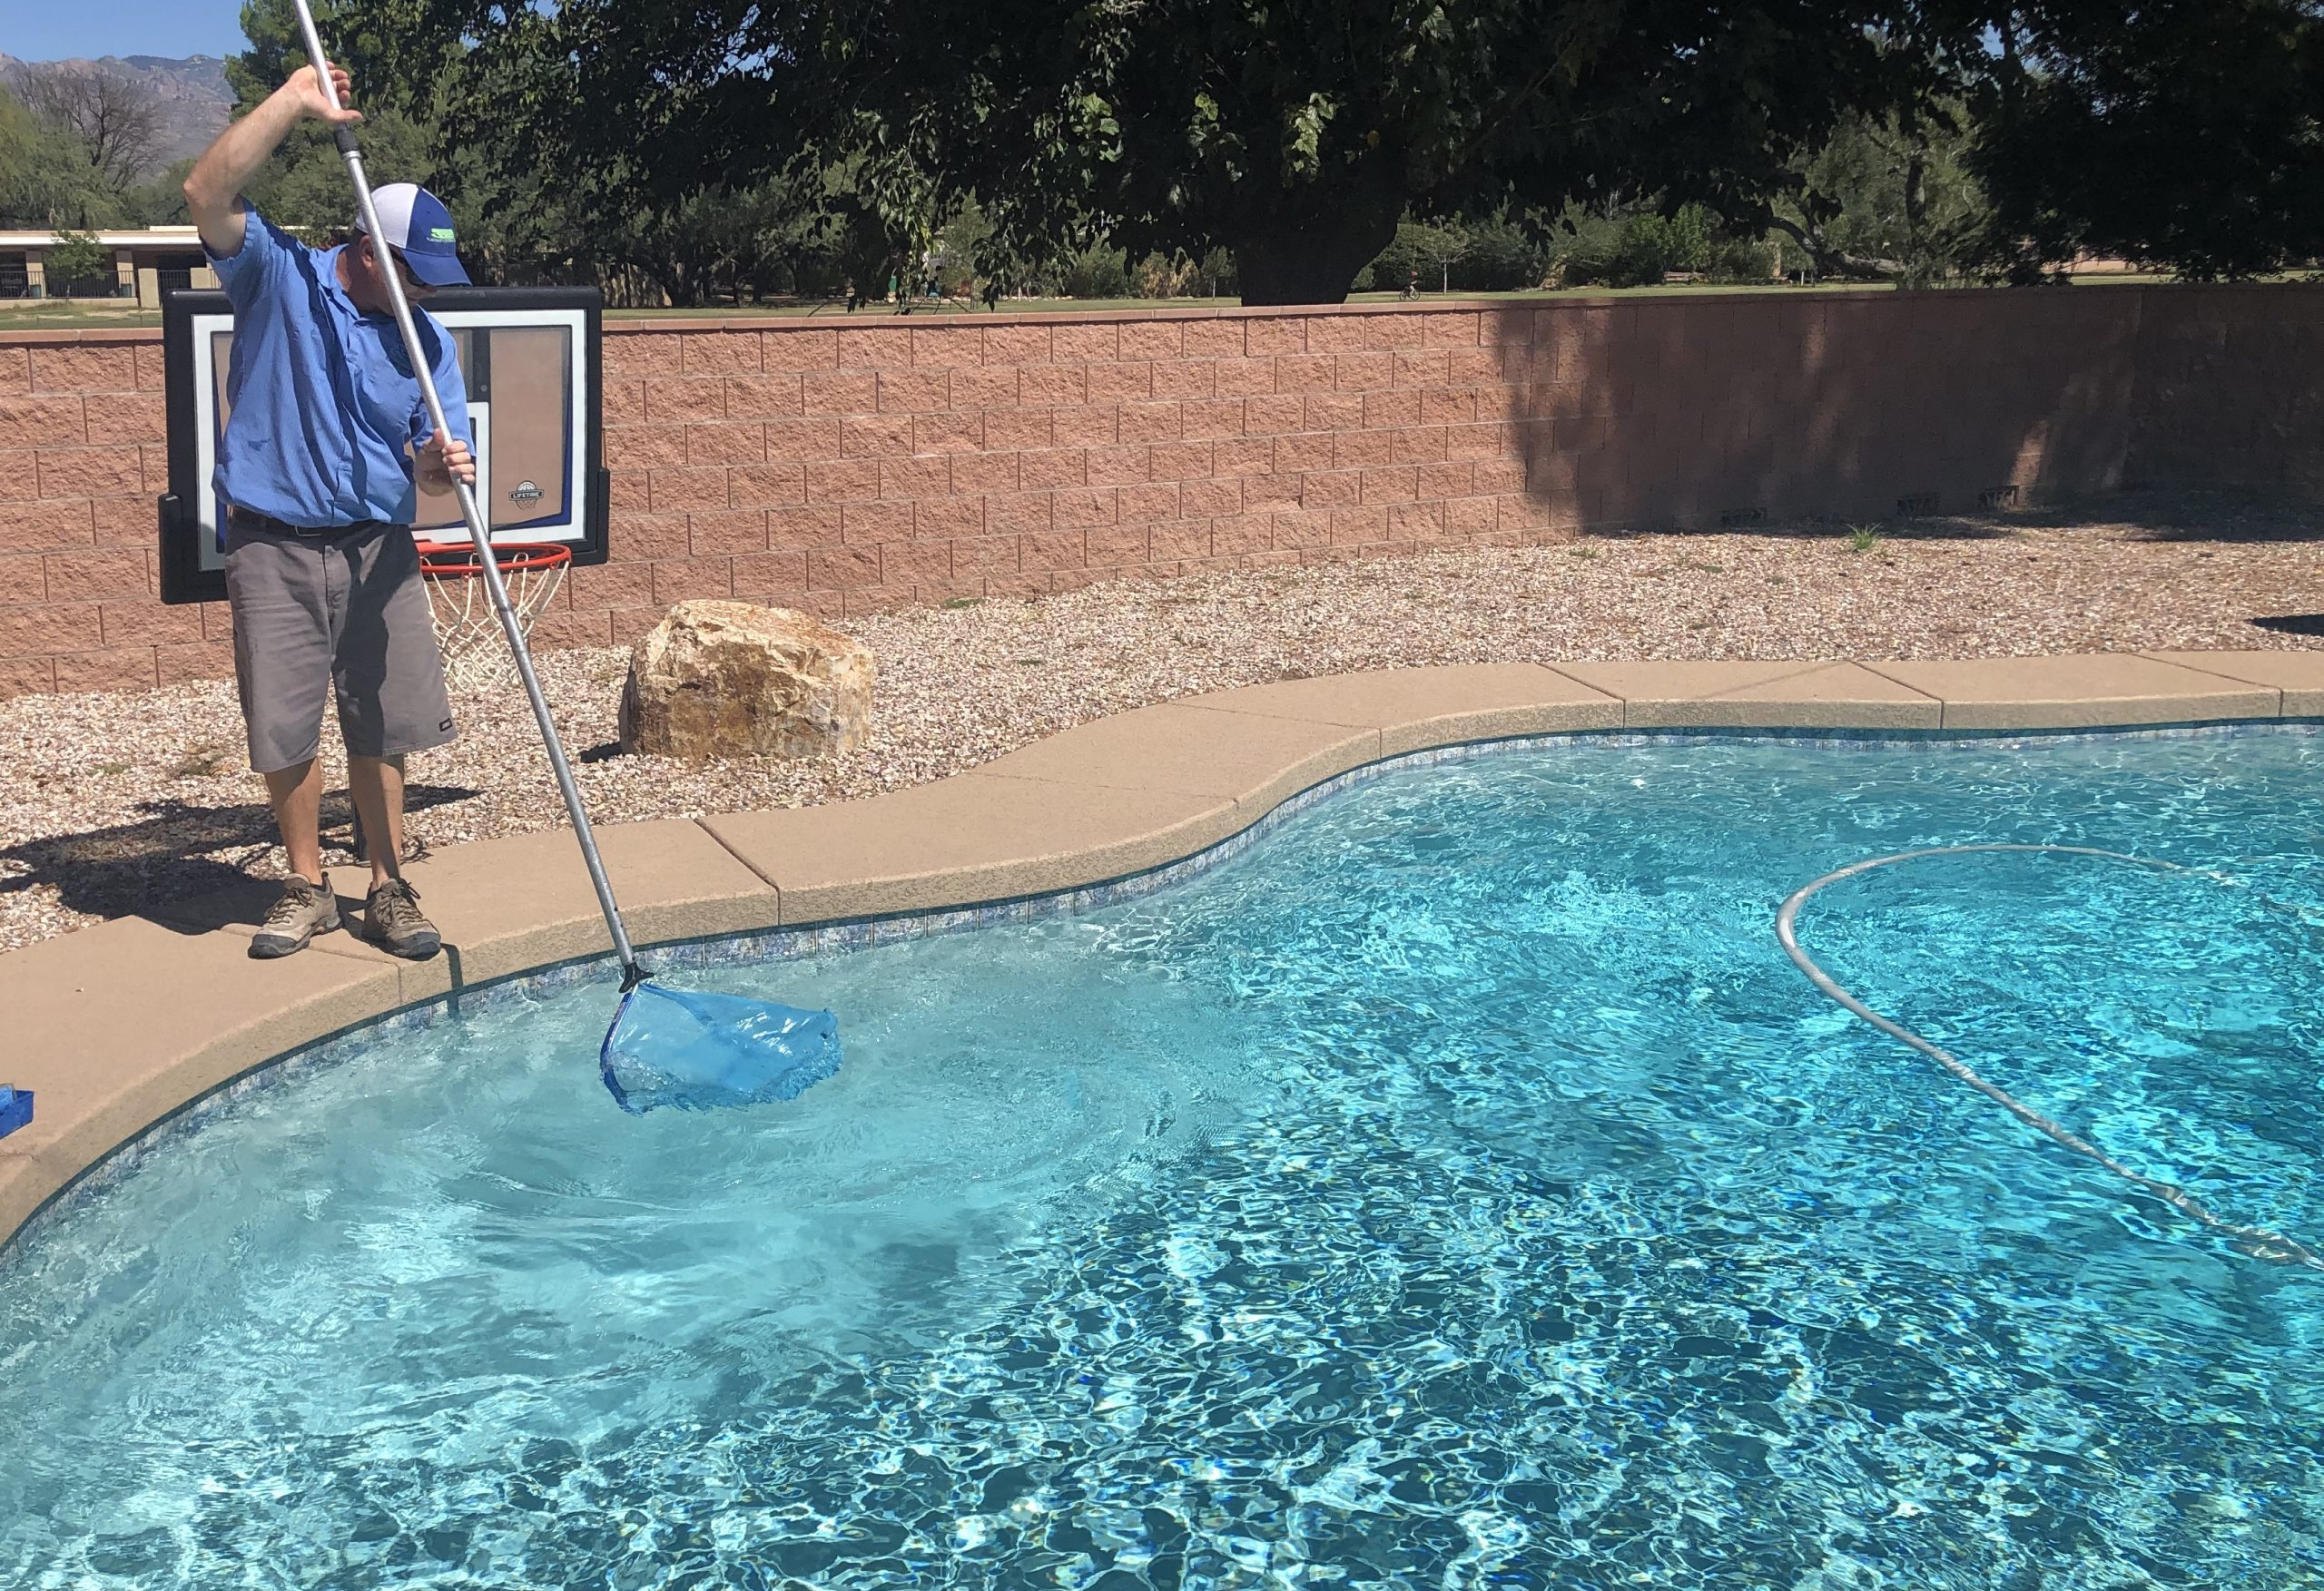 Pool cleaning service Tucson